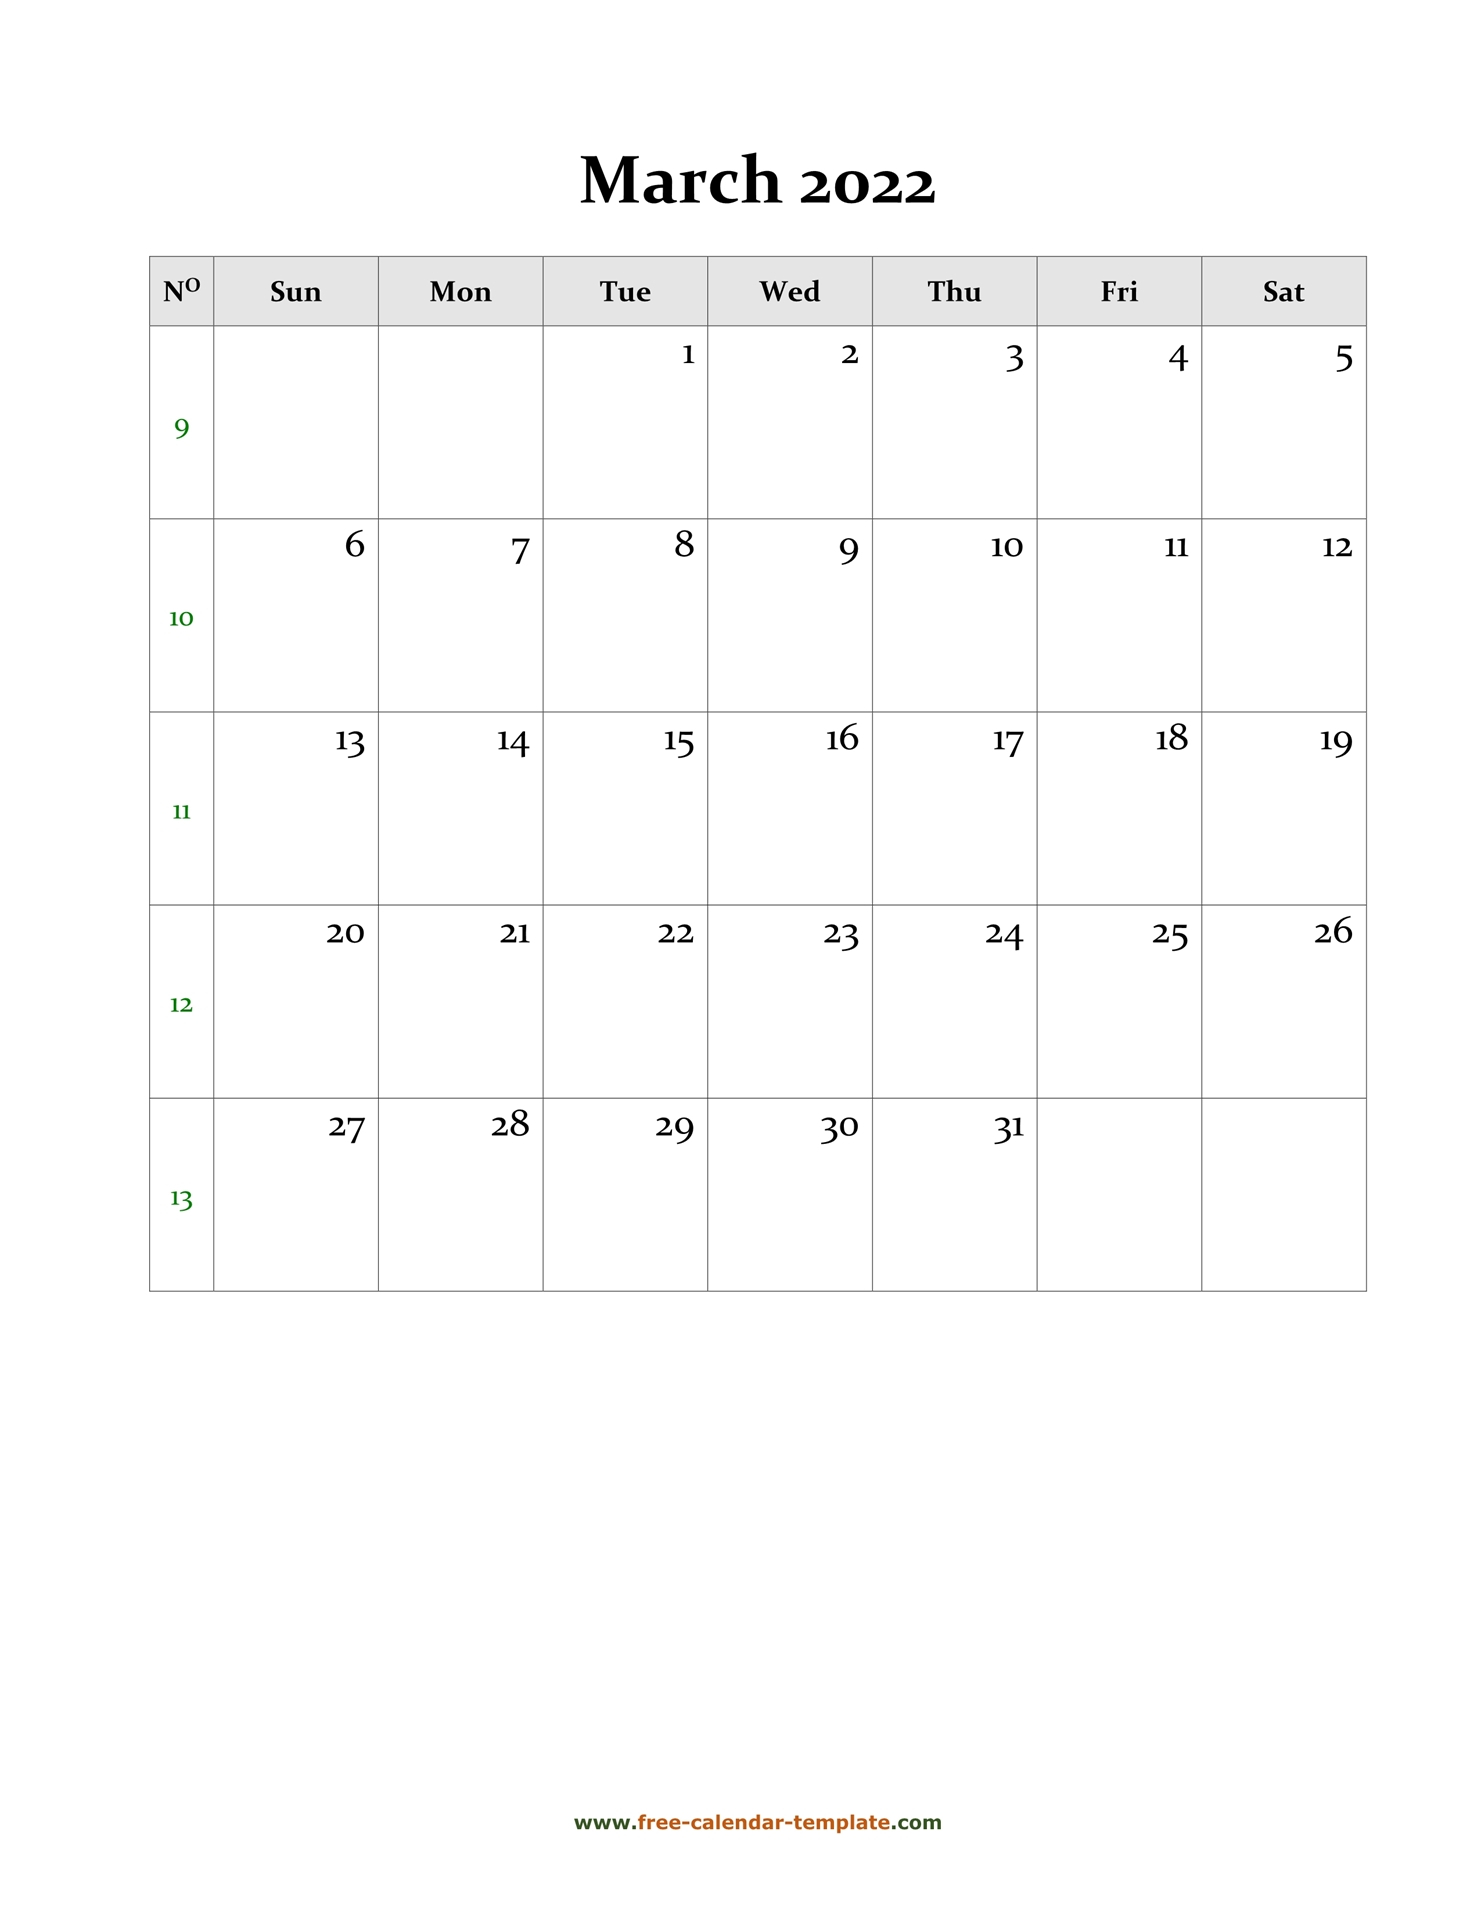 2022 March Calendar (Blank Vertical Template) | Free For Printable Calendars 2022 March